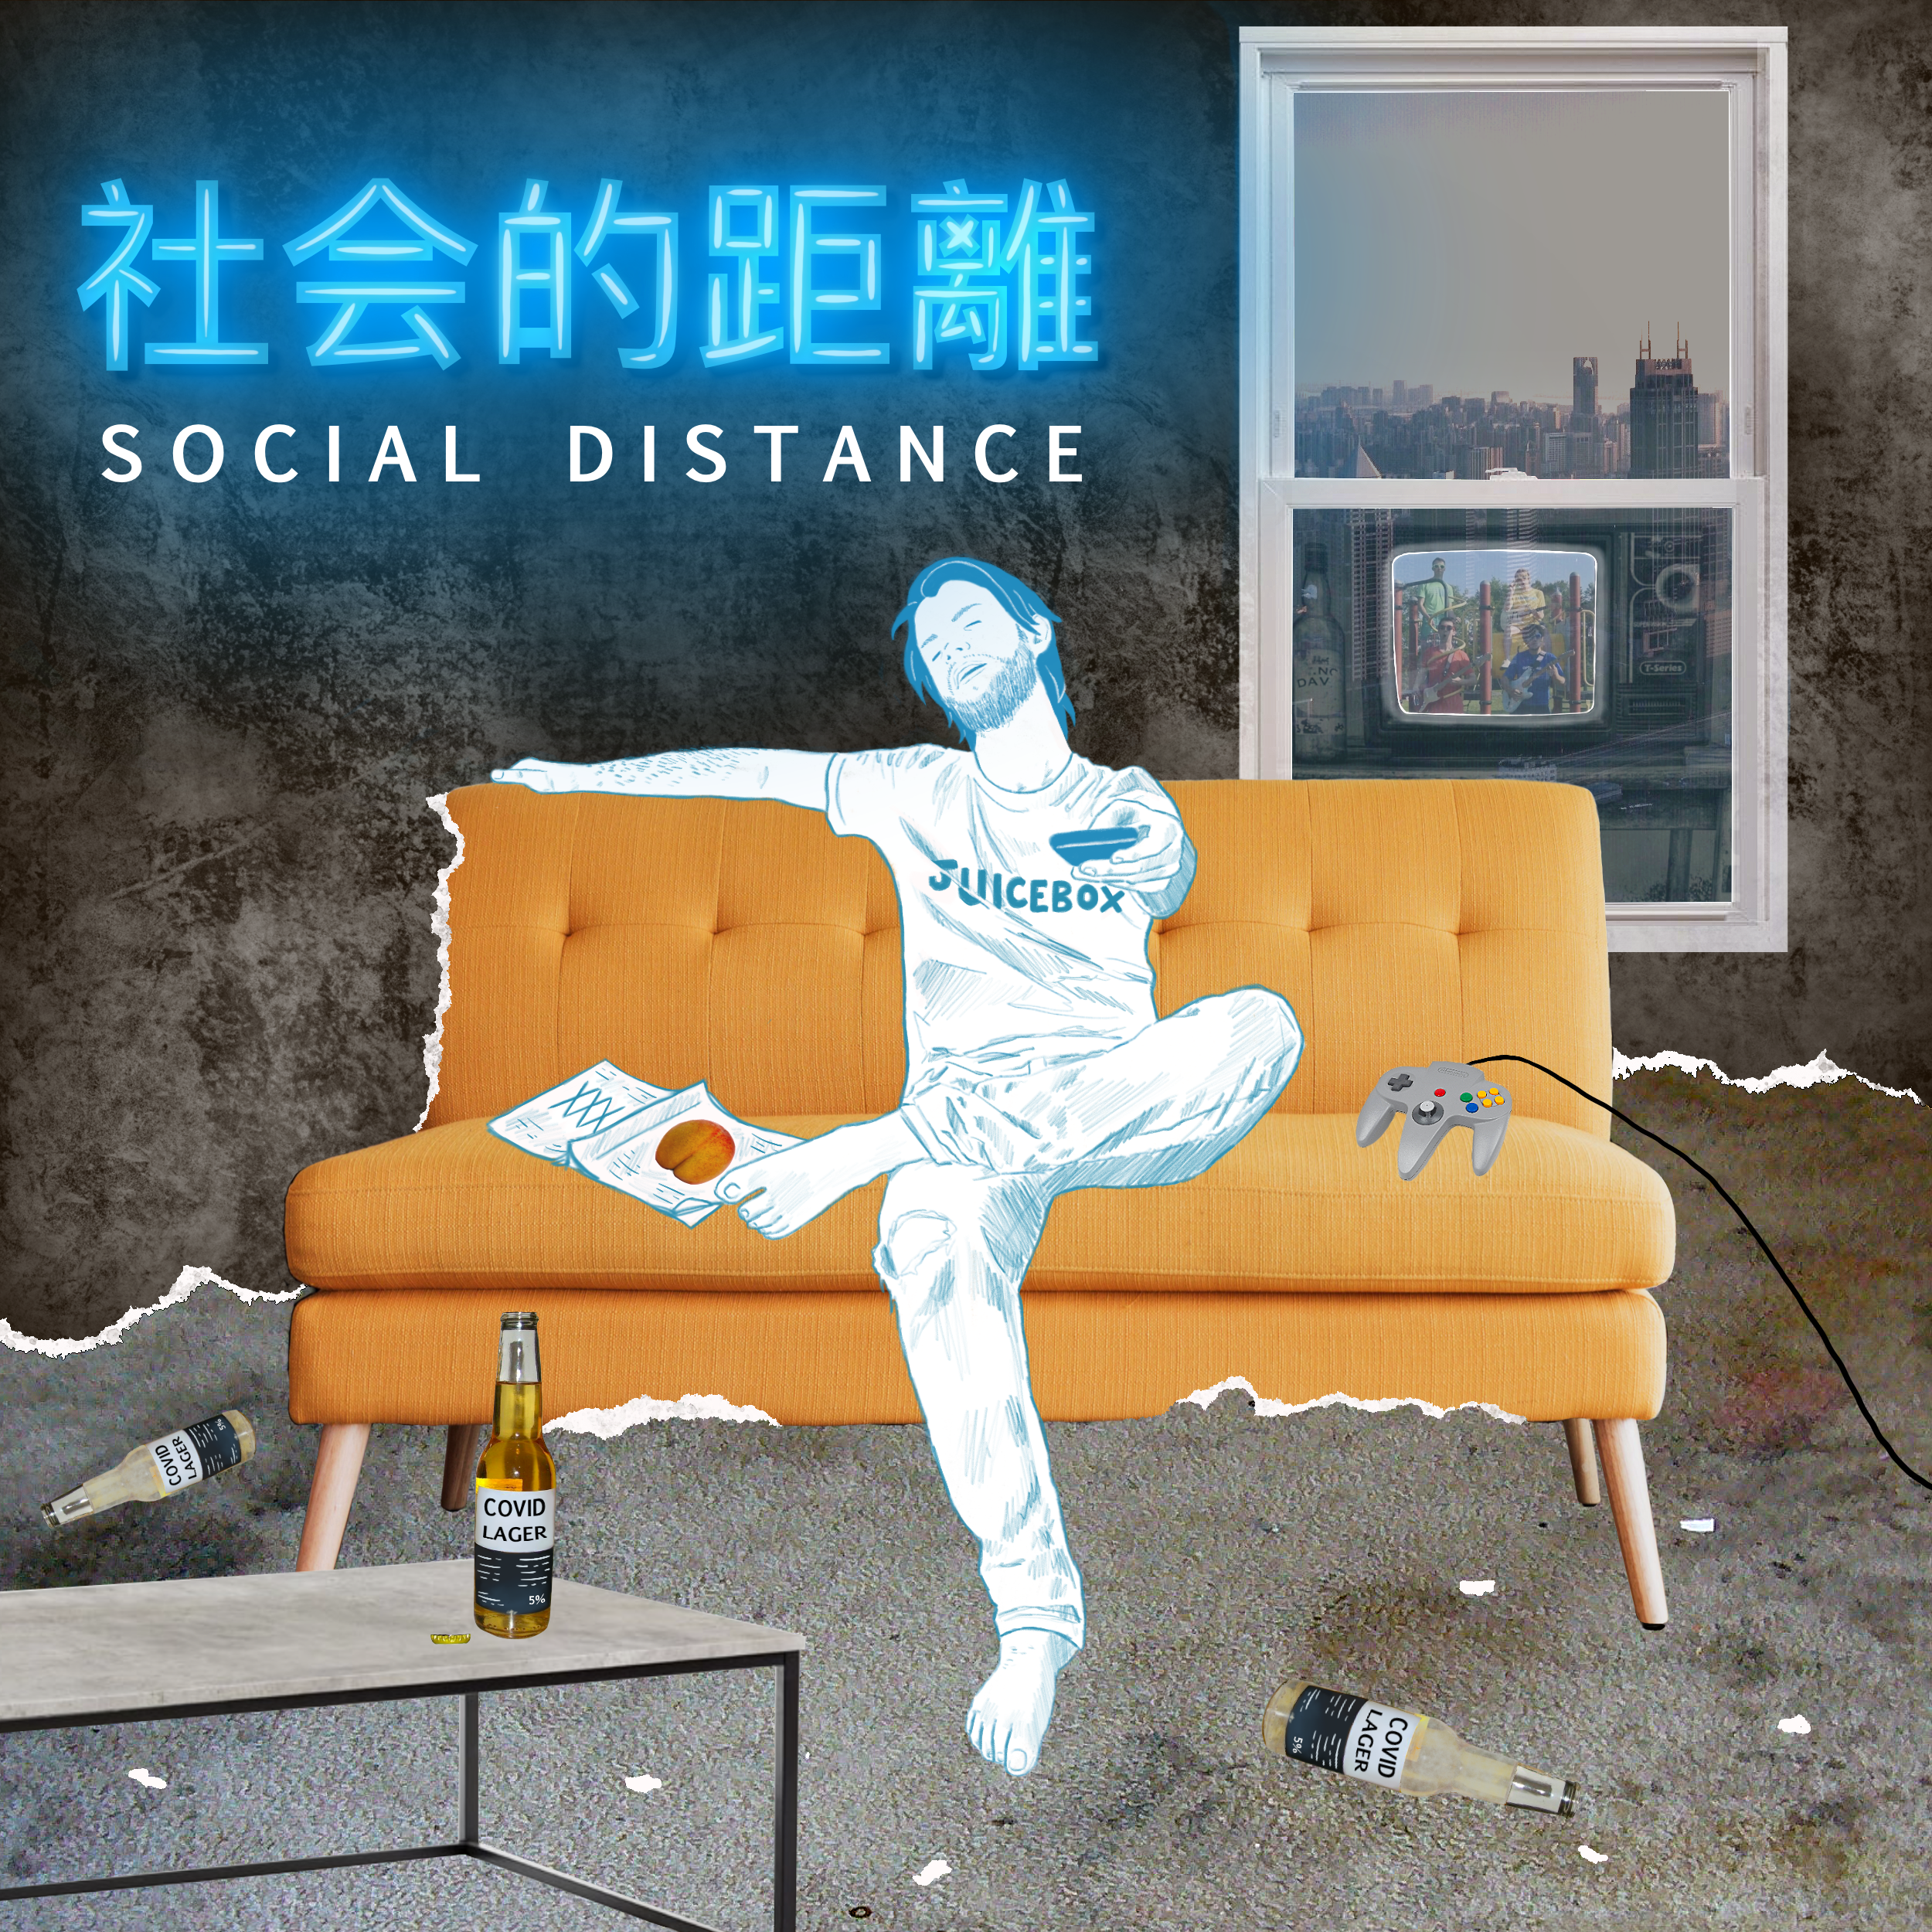 Juicebox - Social Distance